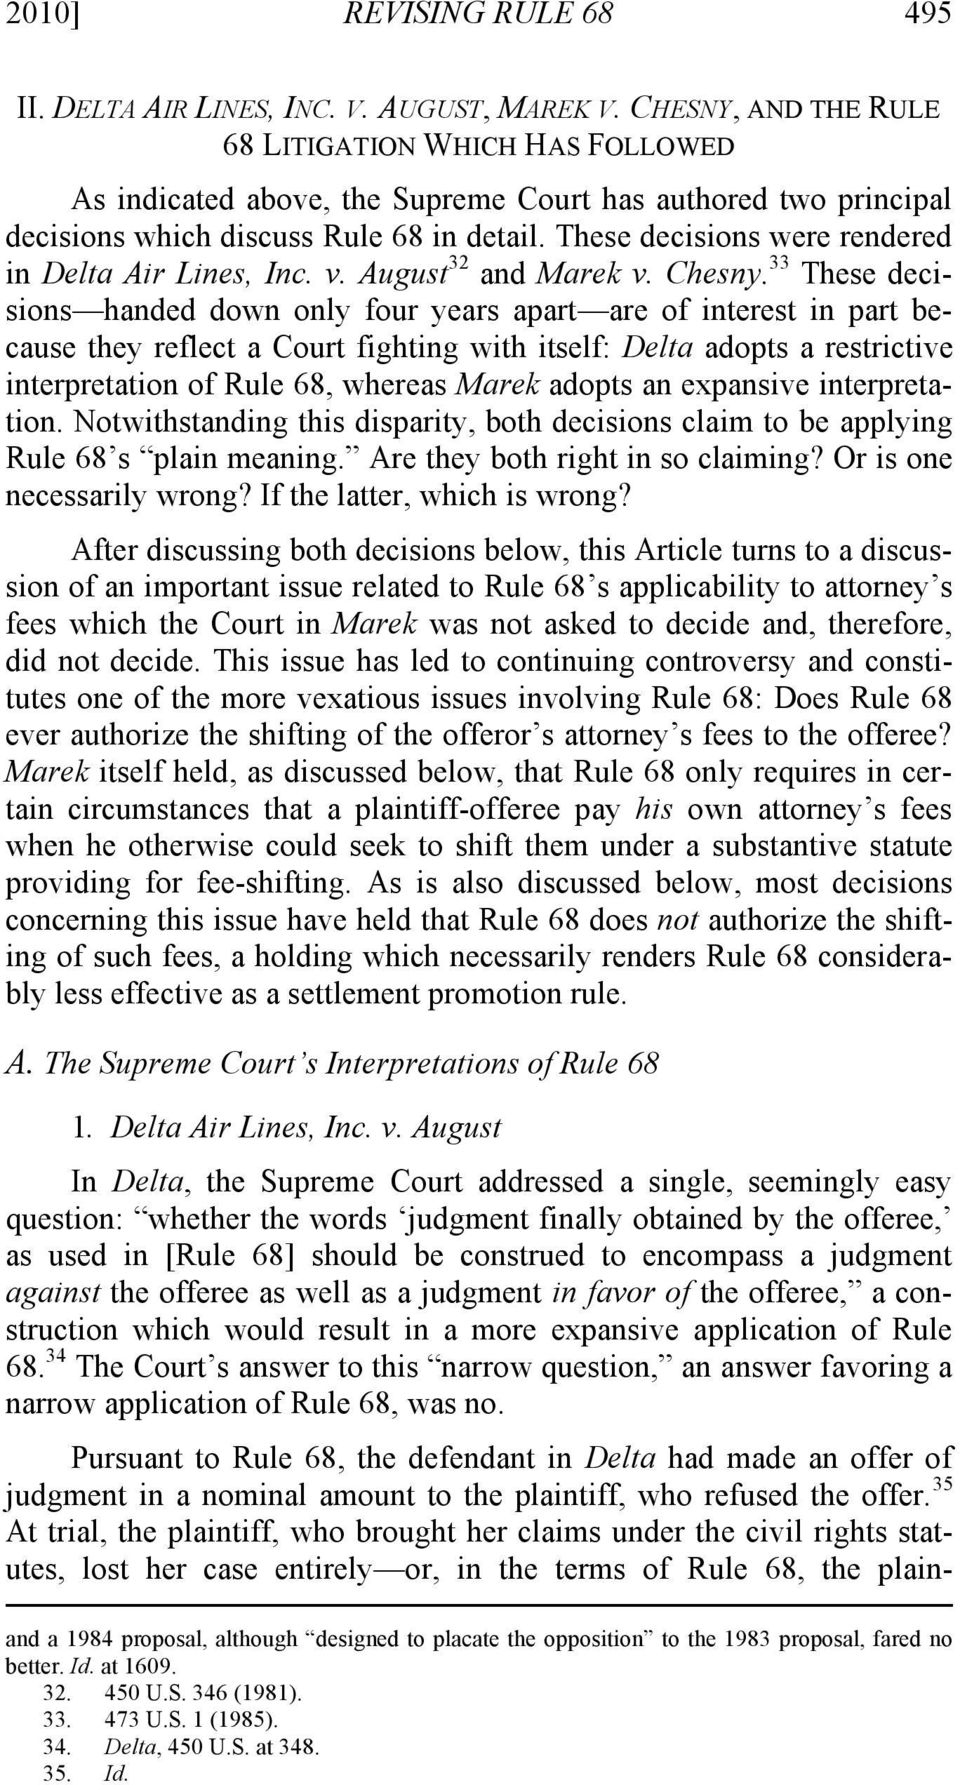 These decisions were rendered in Delta Air Lines, Inc. v. August 32 and Marek v. Chesny.